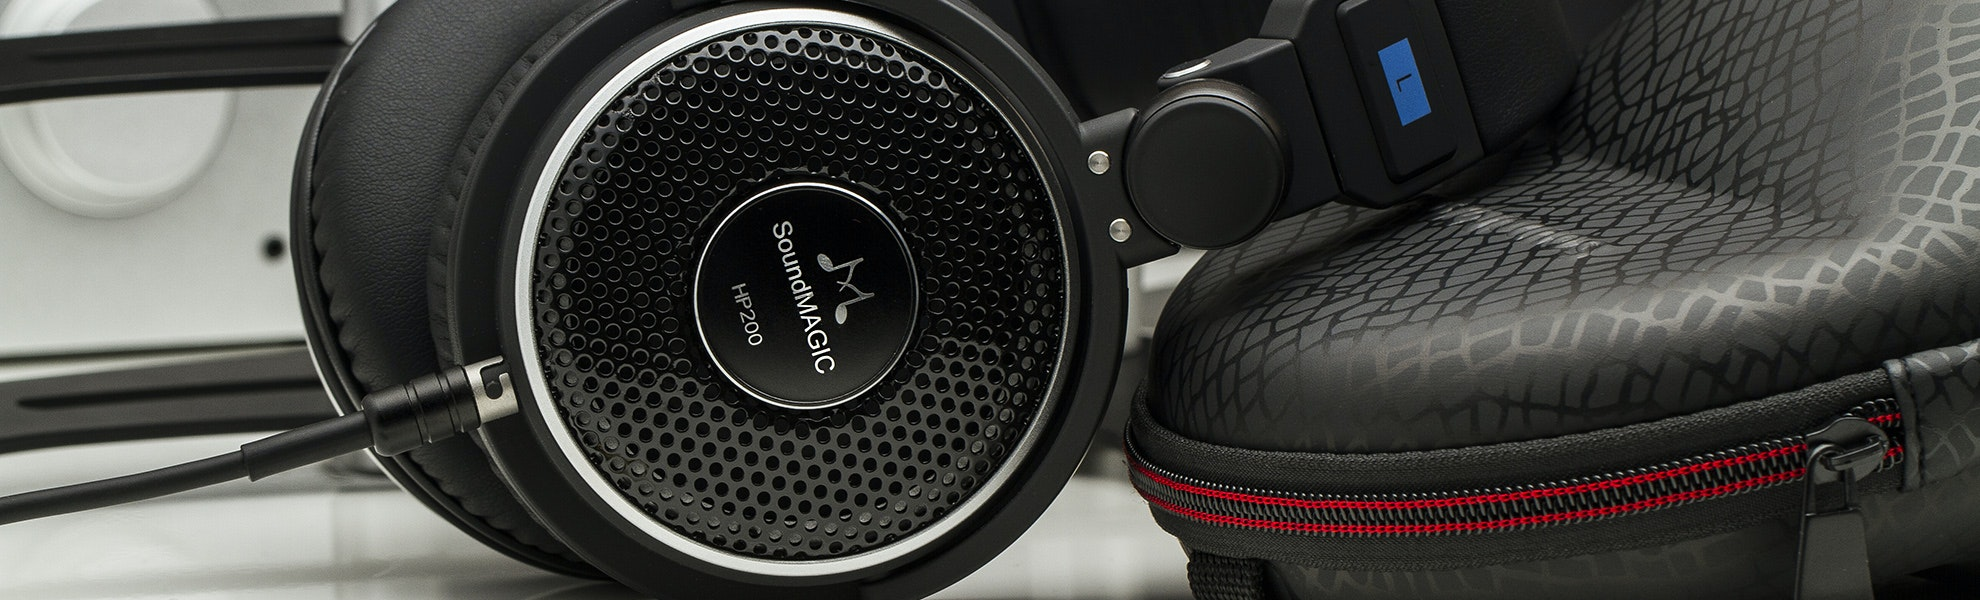 SoundMAGIC HP200 Headphones